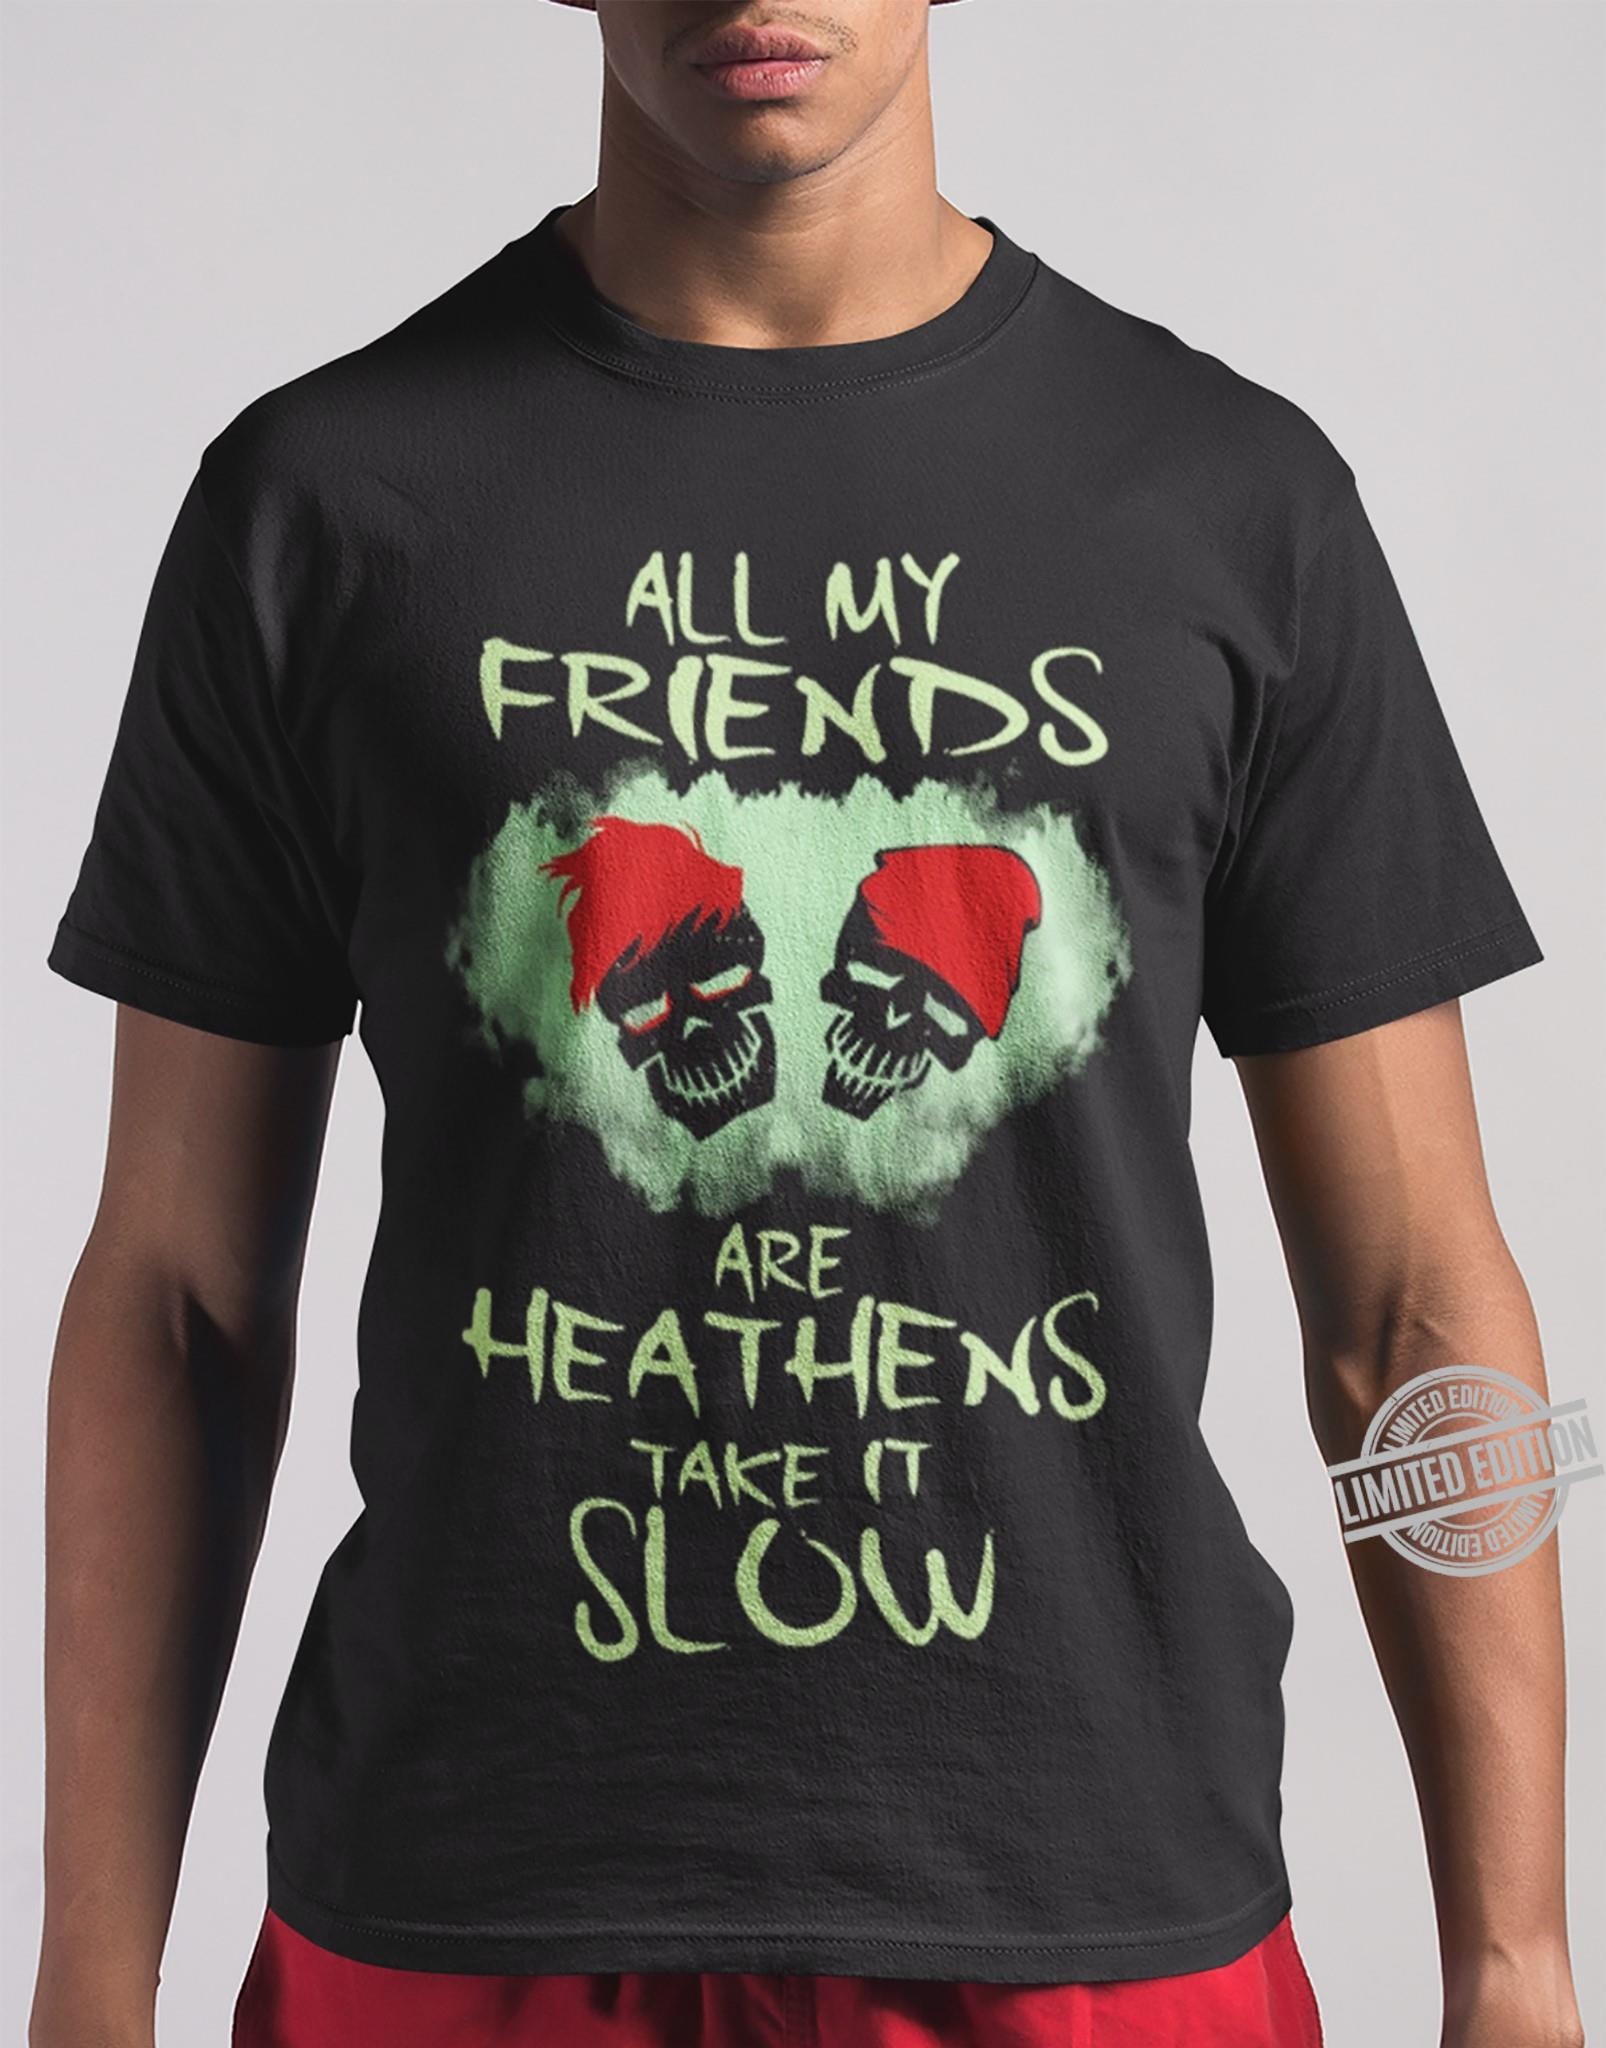 All My Friends Are Heathens Take It Slow Shirt